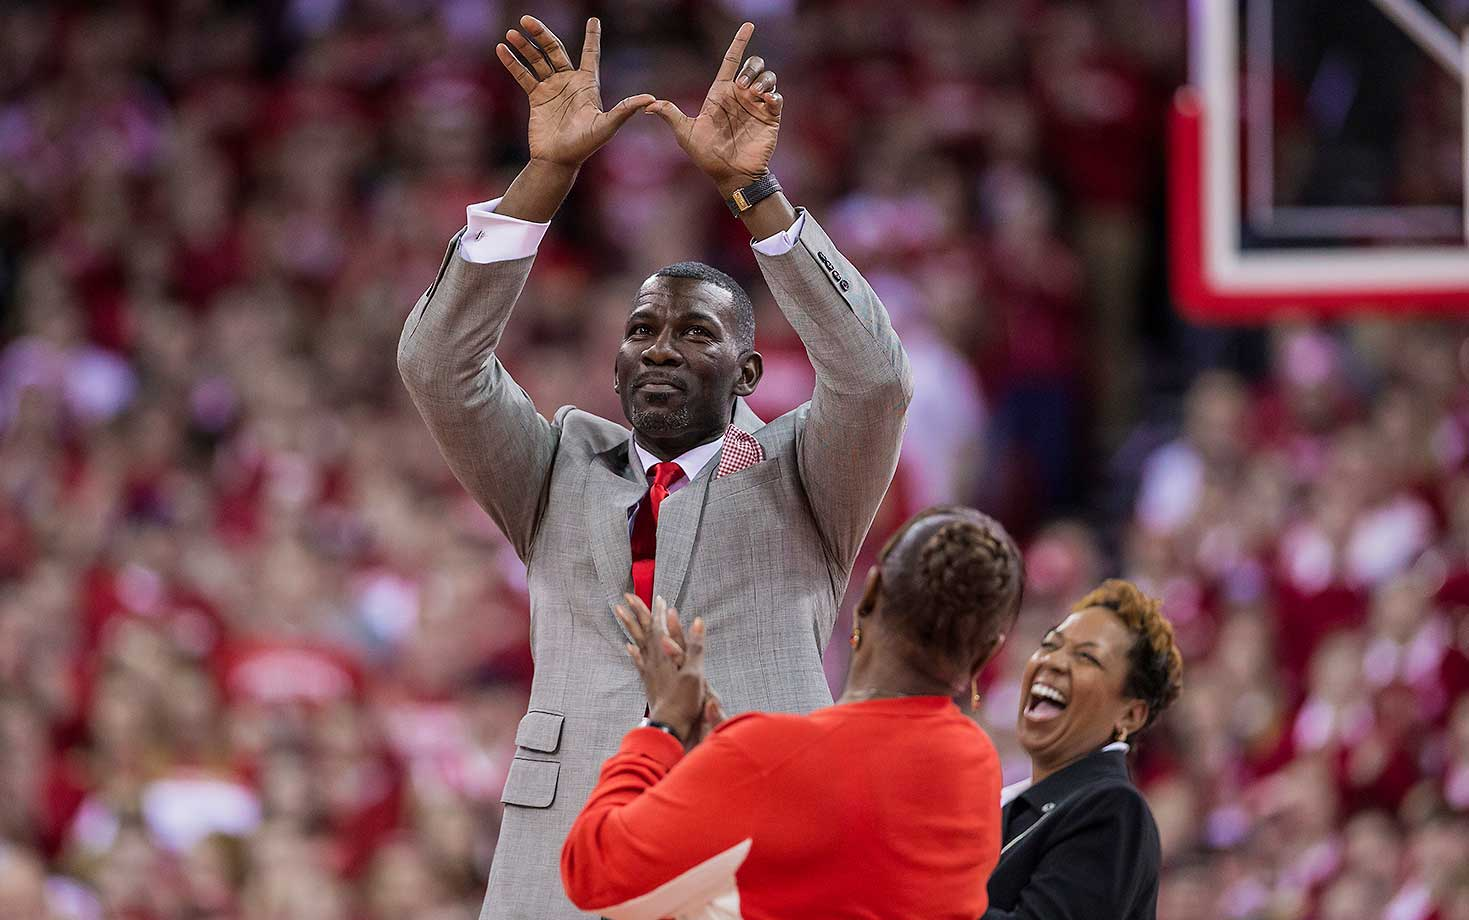 Former Wisconsin basketball player Michael Finley is introduced during a timeout of Sunday's game against Michigan.